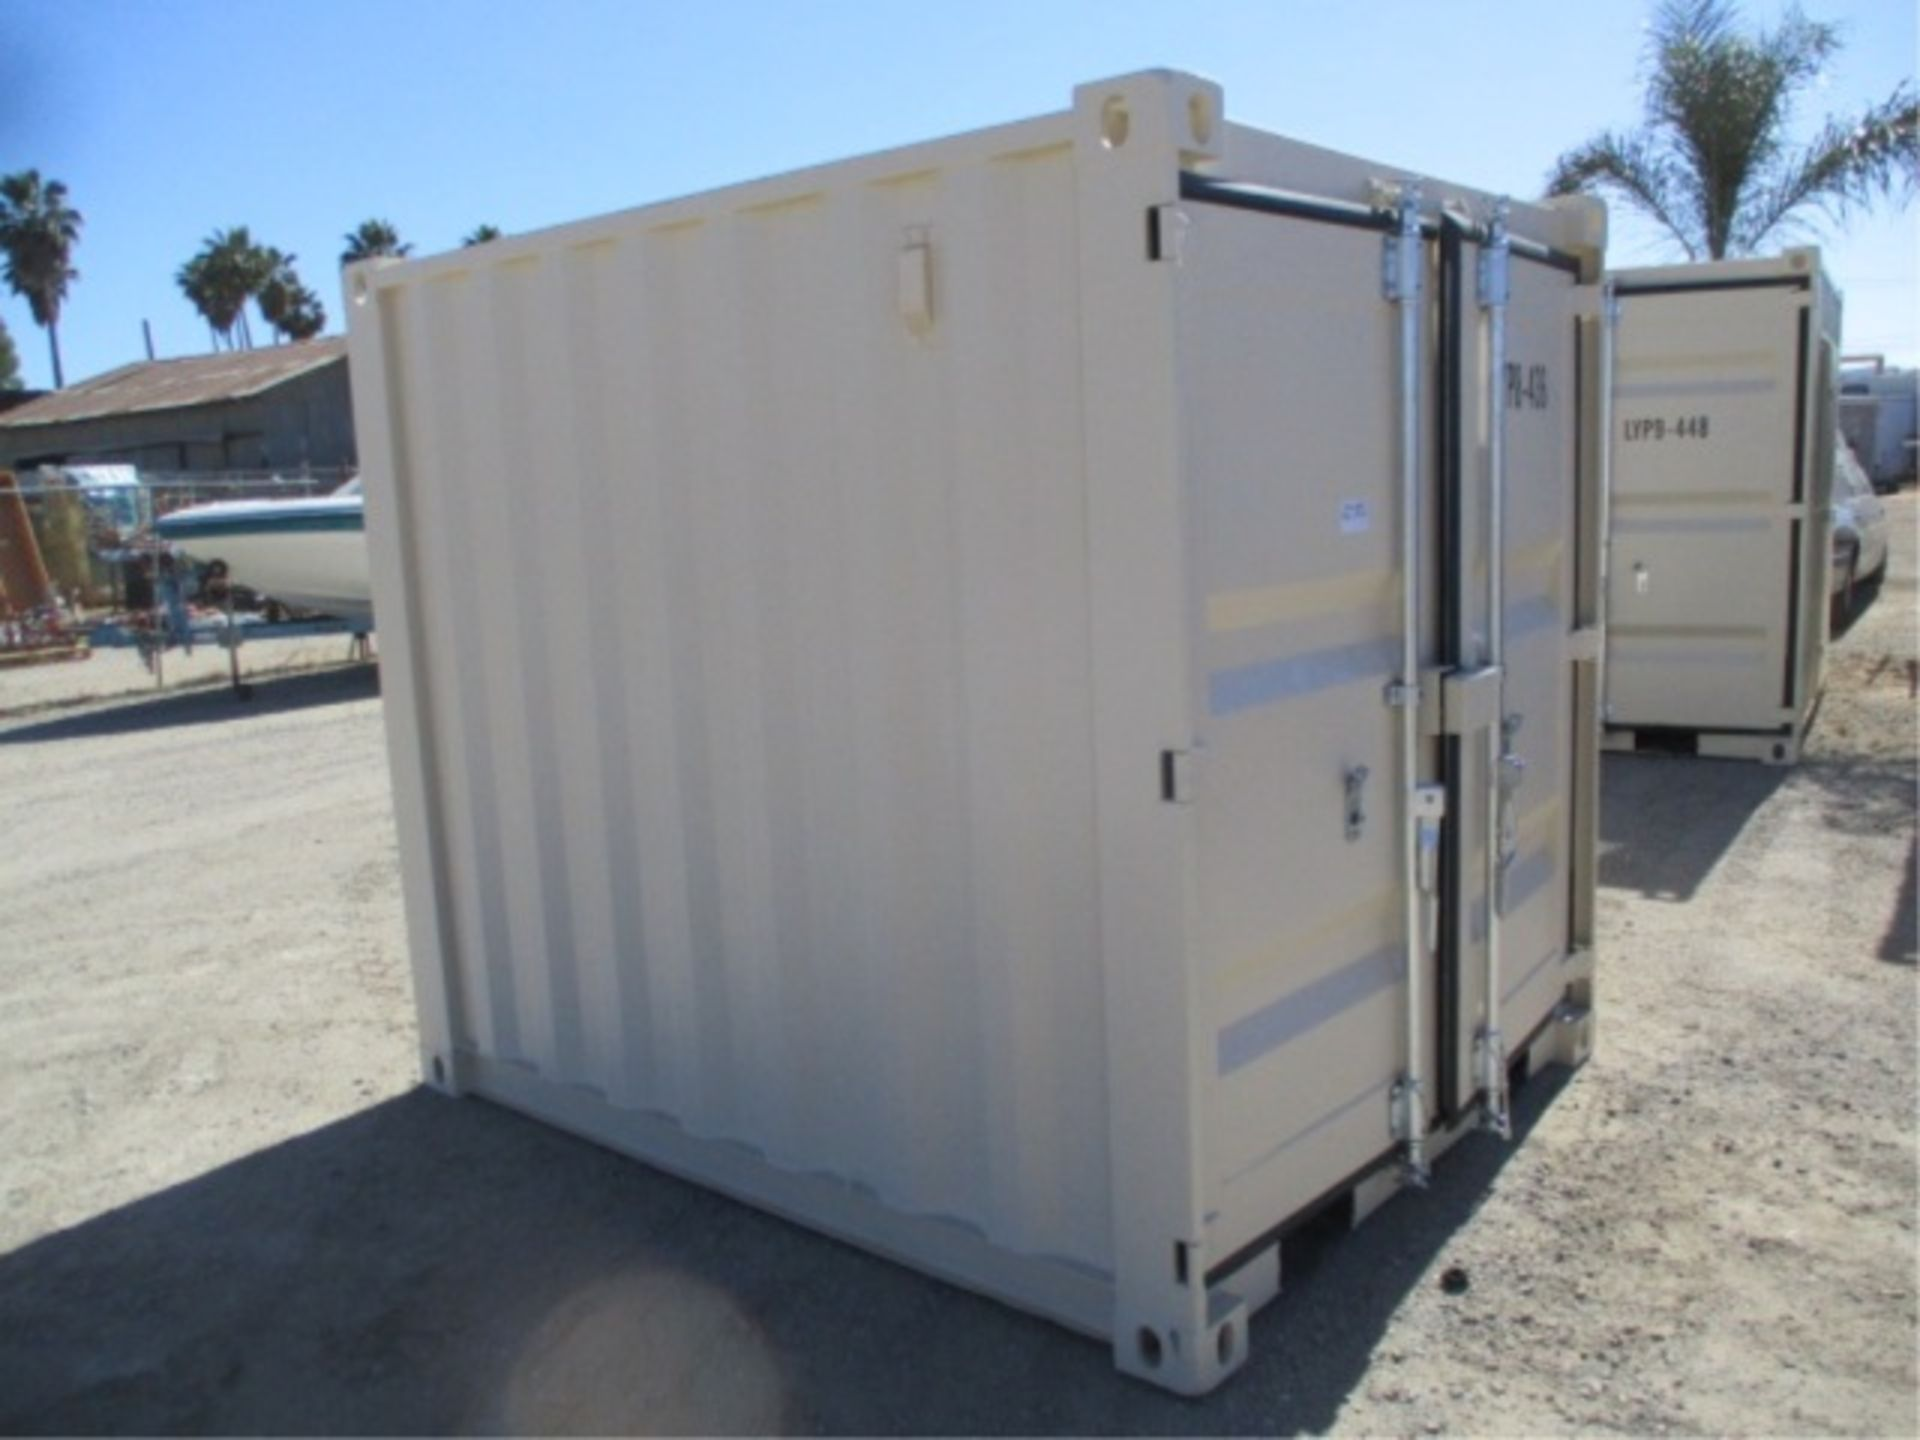 Lot 480 - Unused 8' Portable Office Container, S/N: LYP8-436